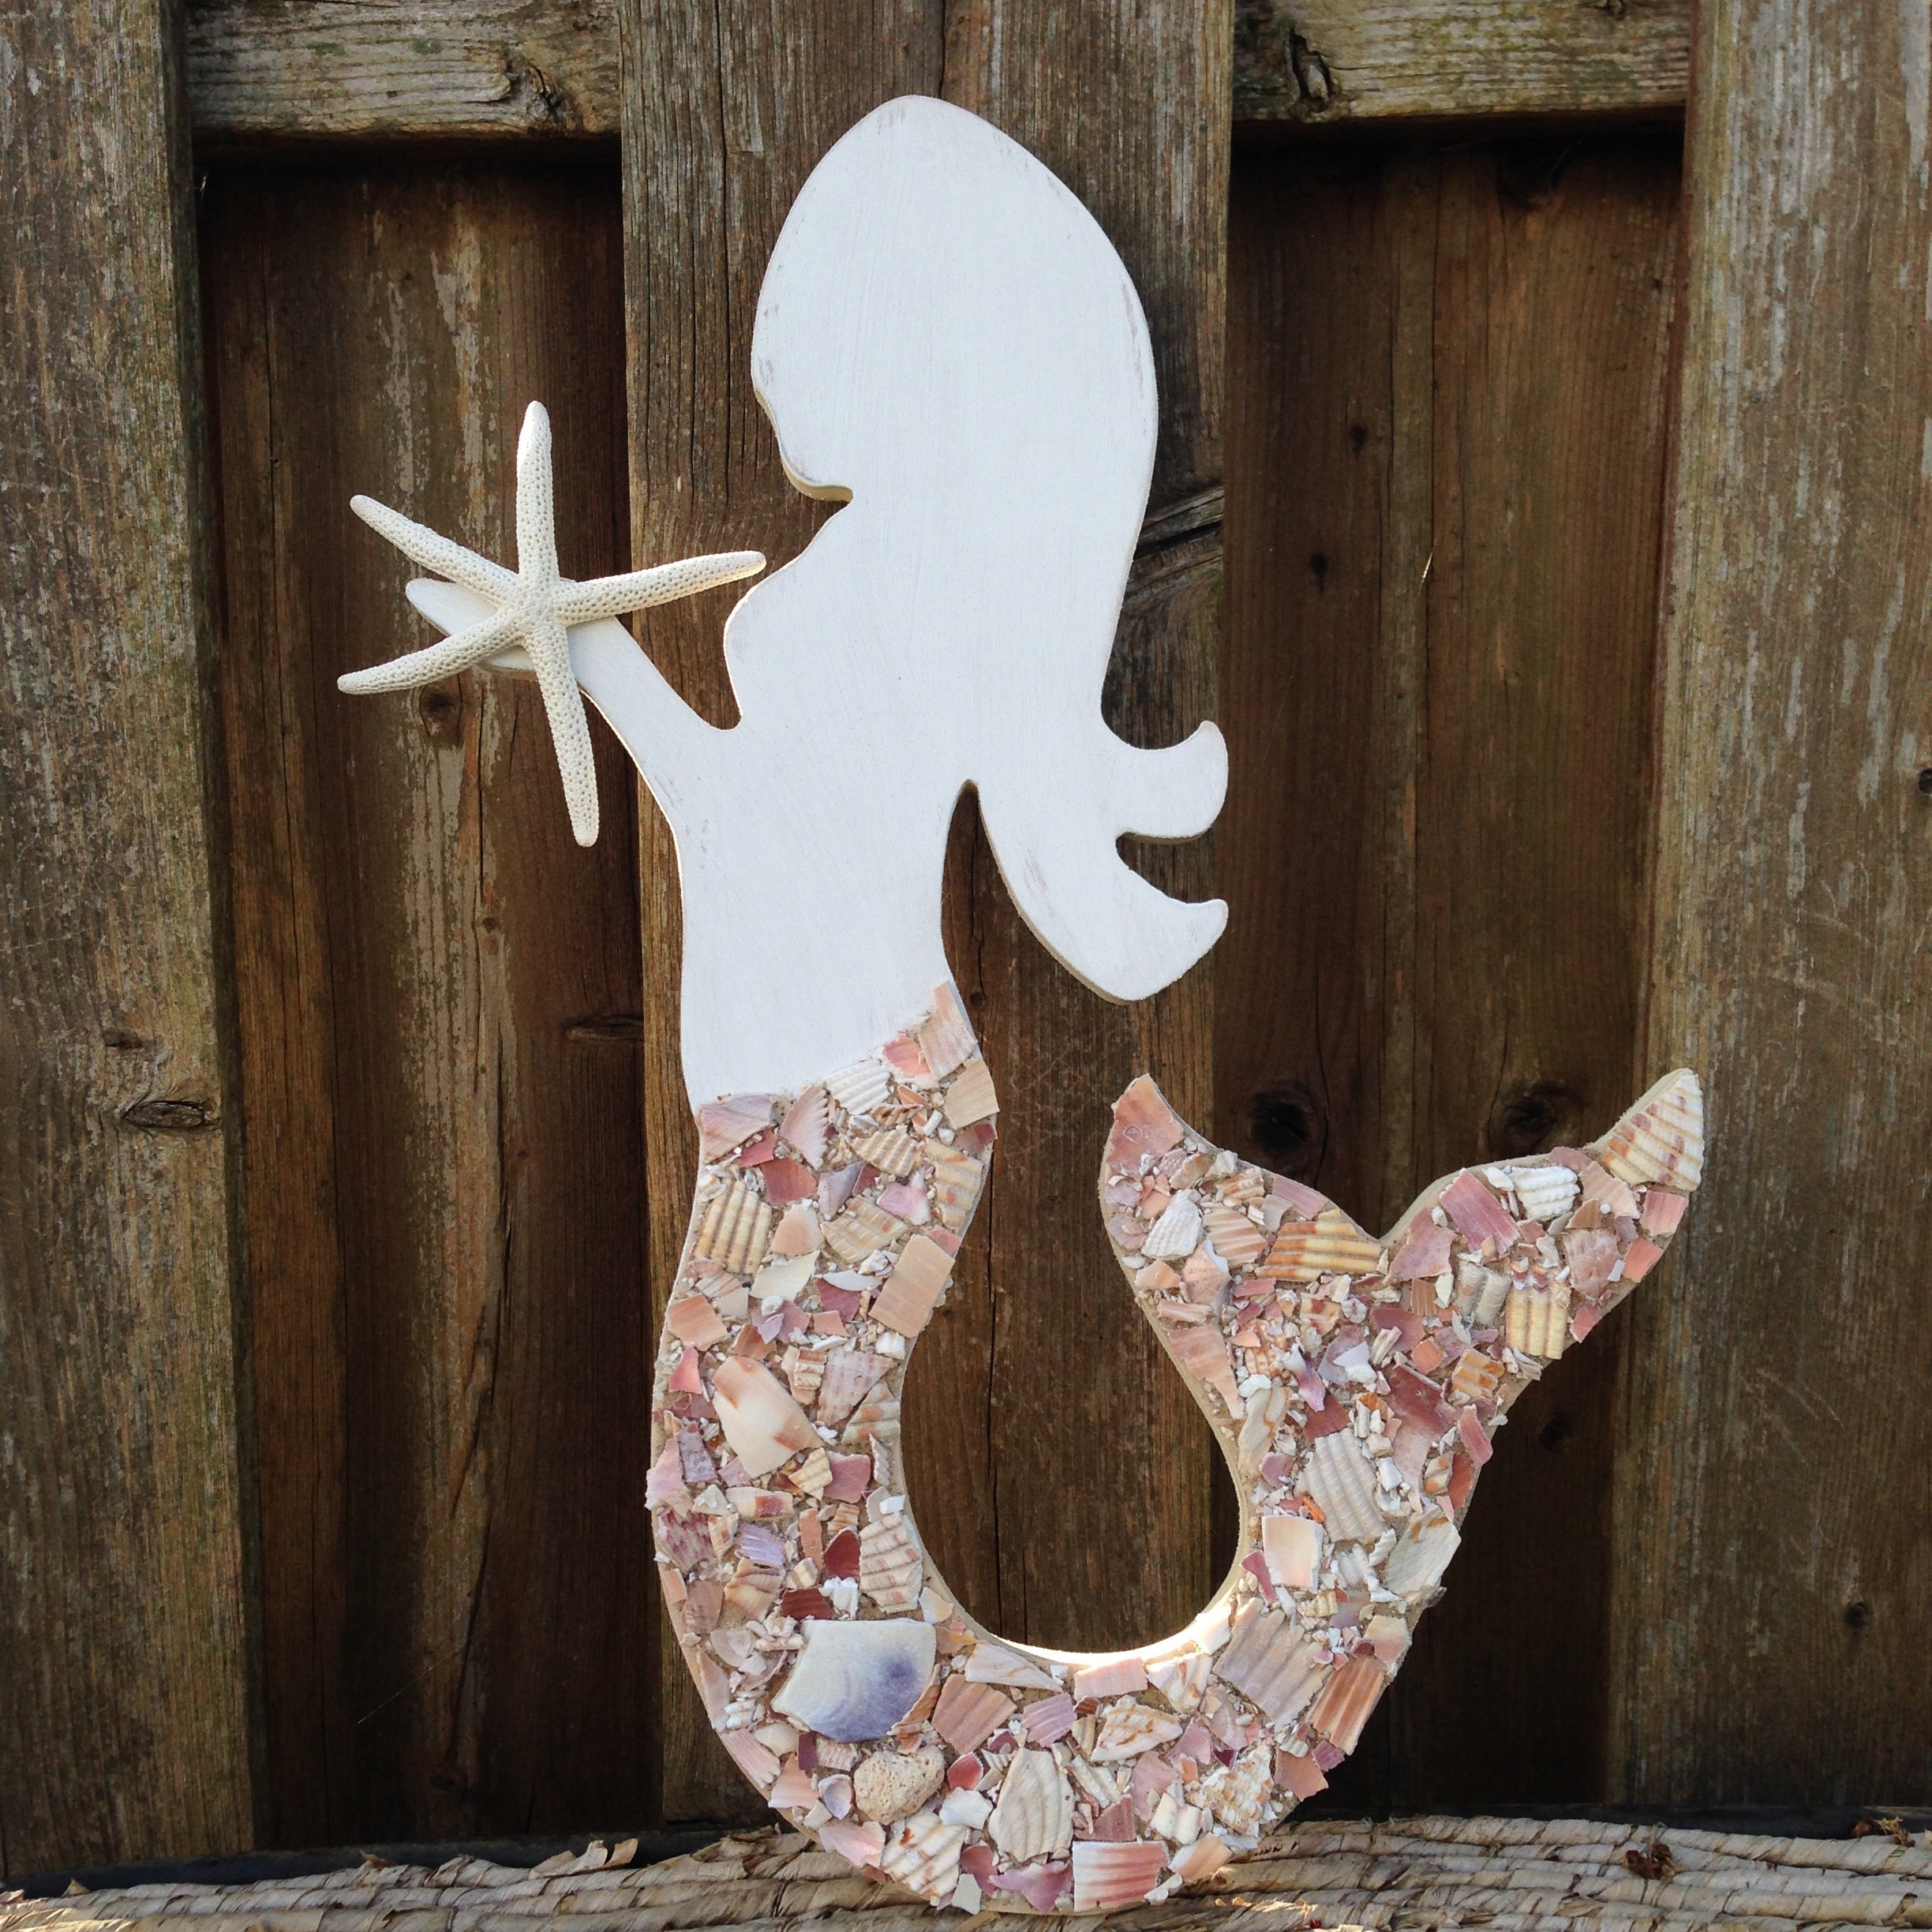 View Photos Of Wooden Mermaid Wall Art Showing 15 Of 15 Photos